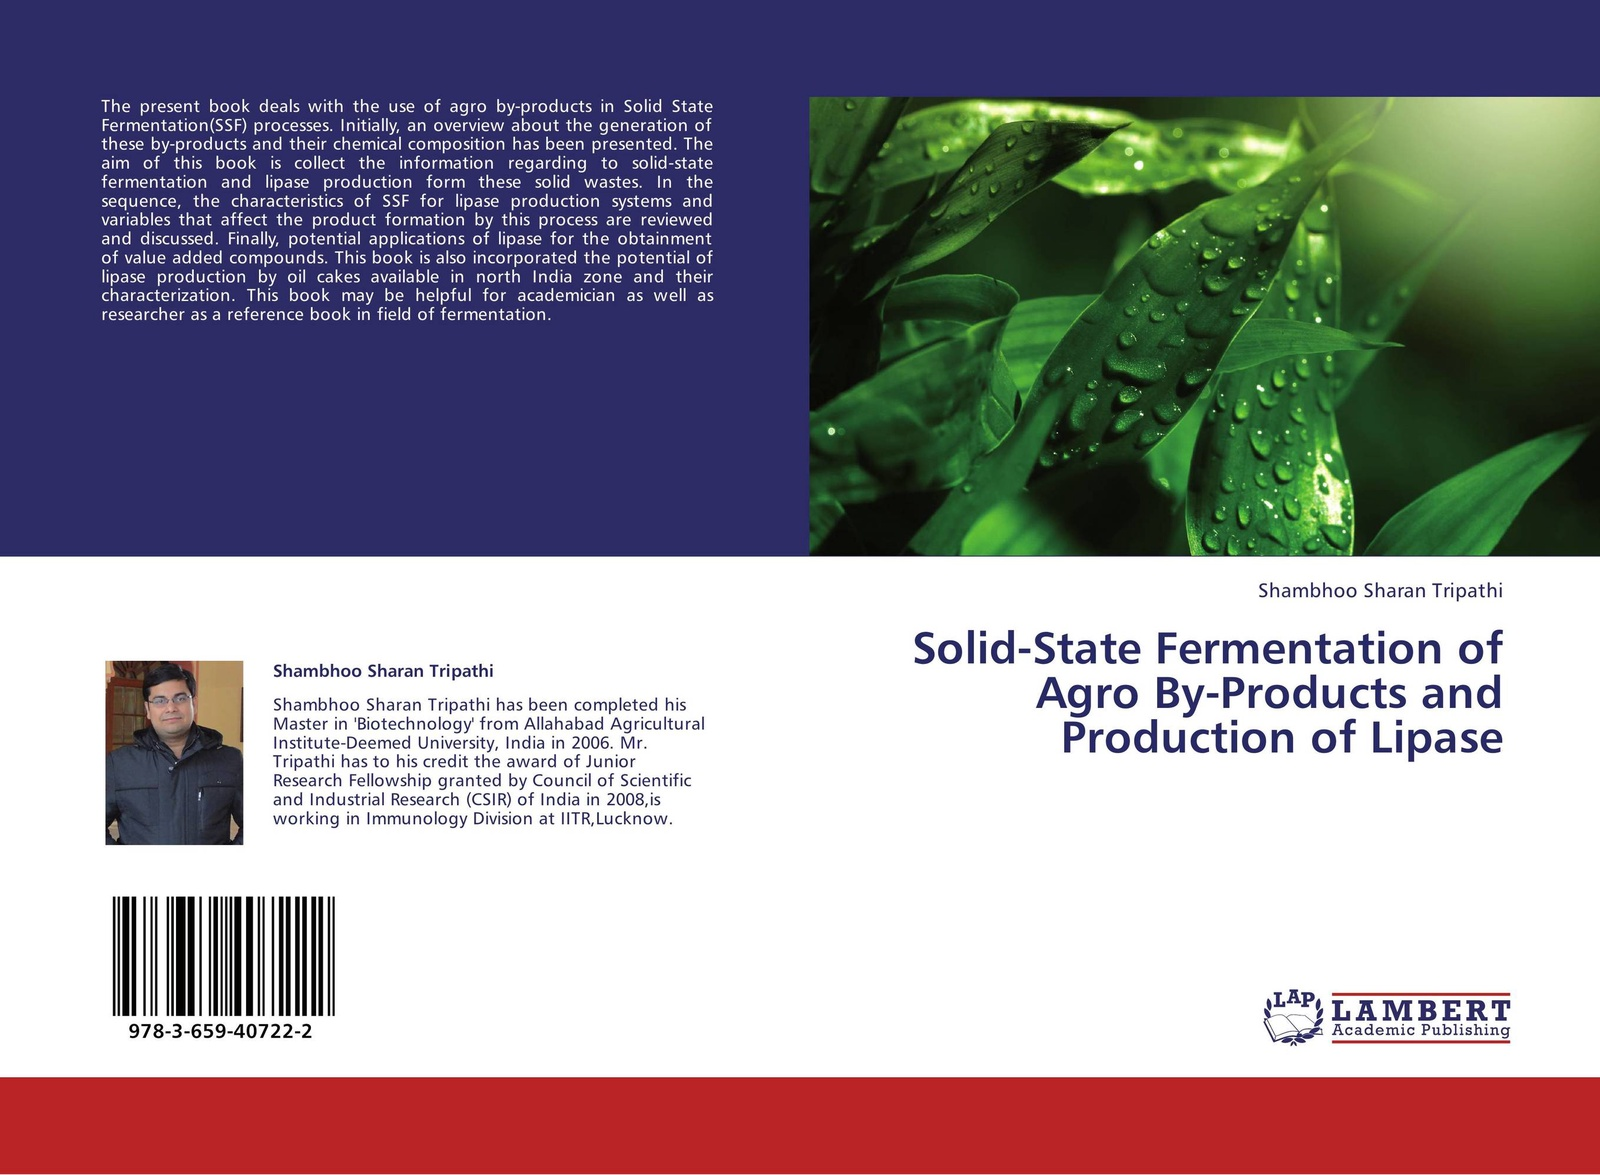 Shambhoo Sharan Tripathi Solid-State Fermentation of Agro By-Products and Production of Lipase цена